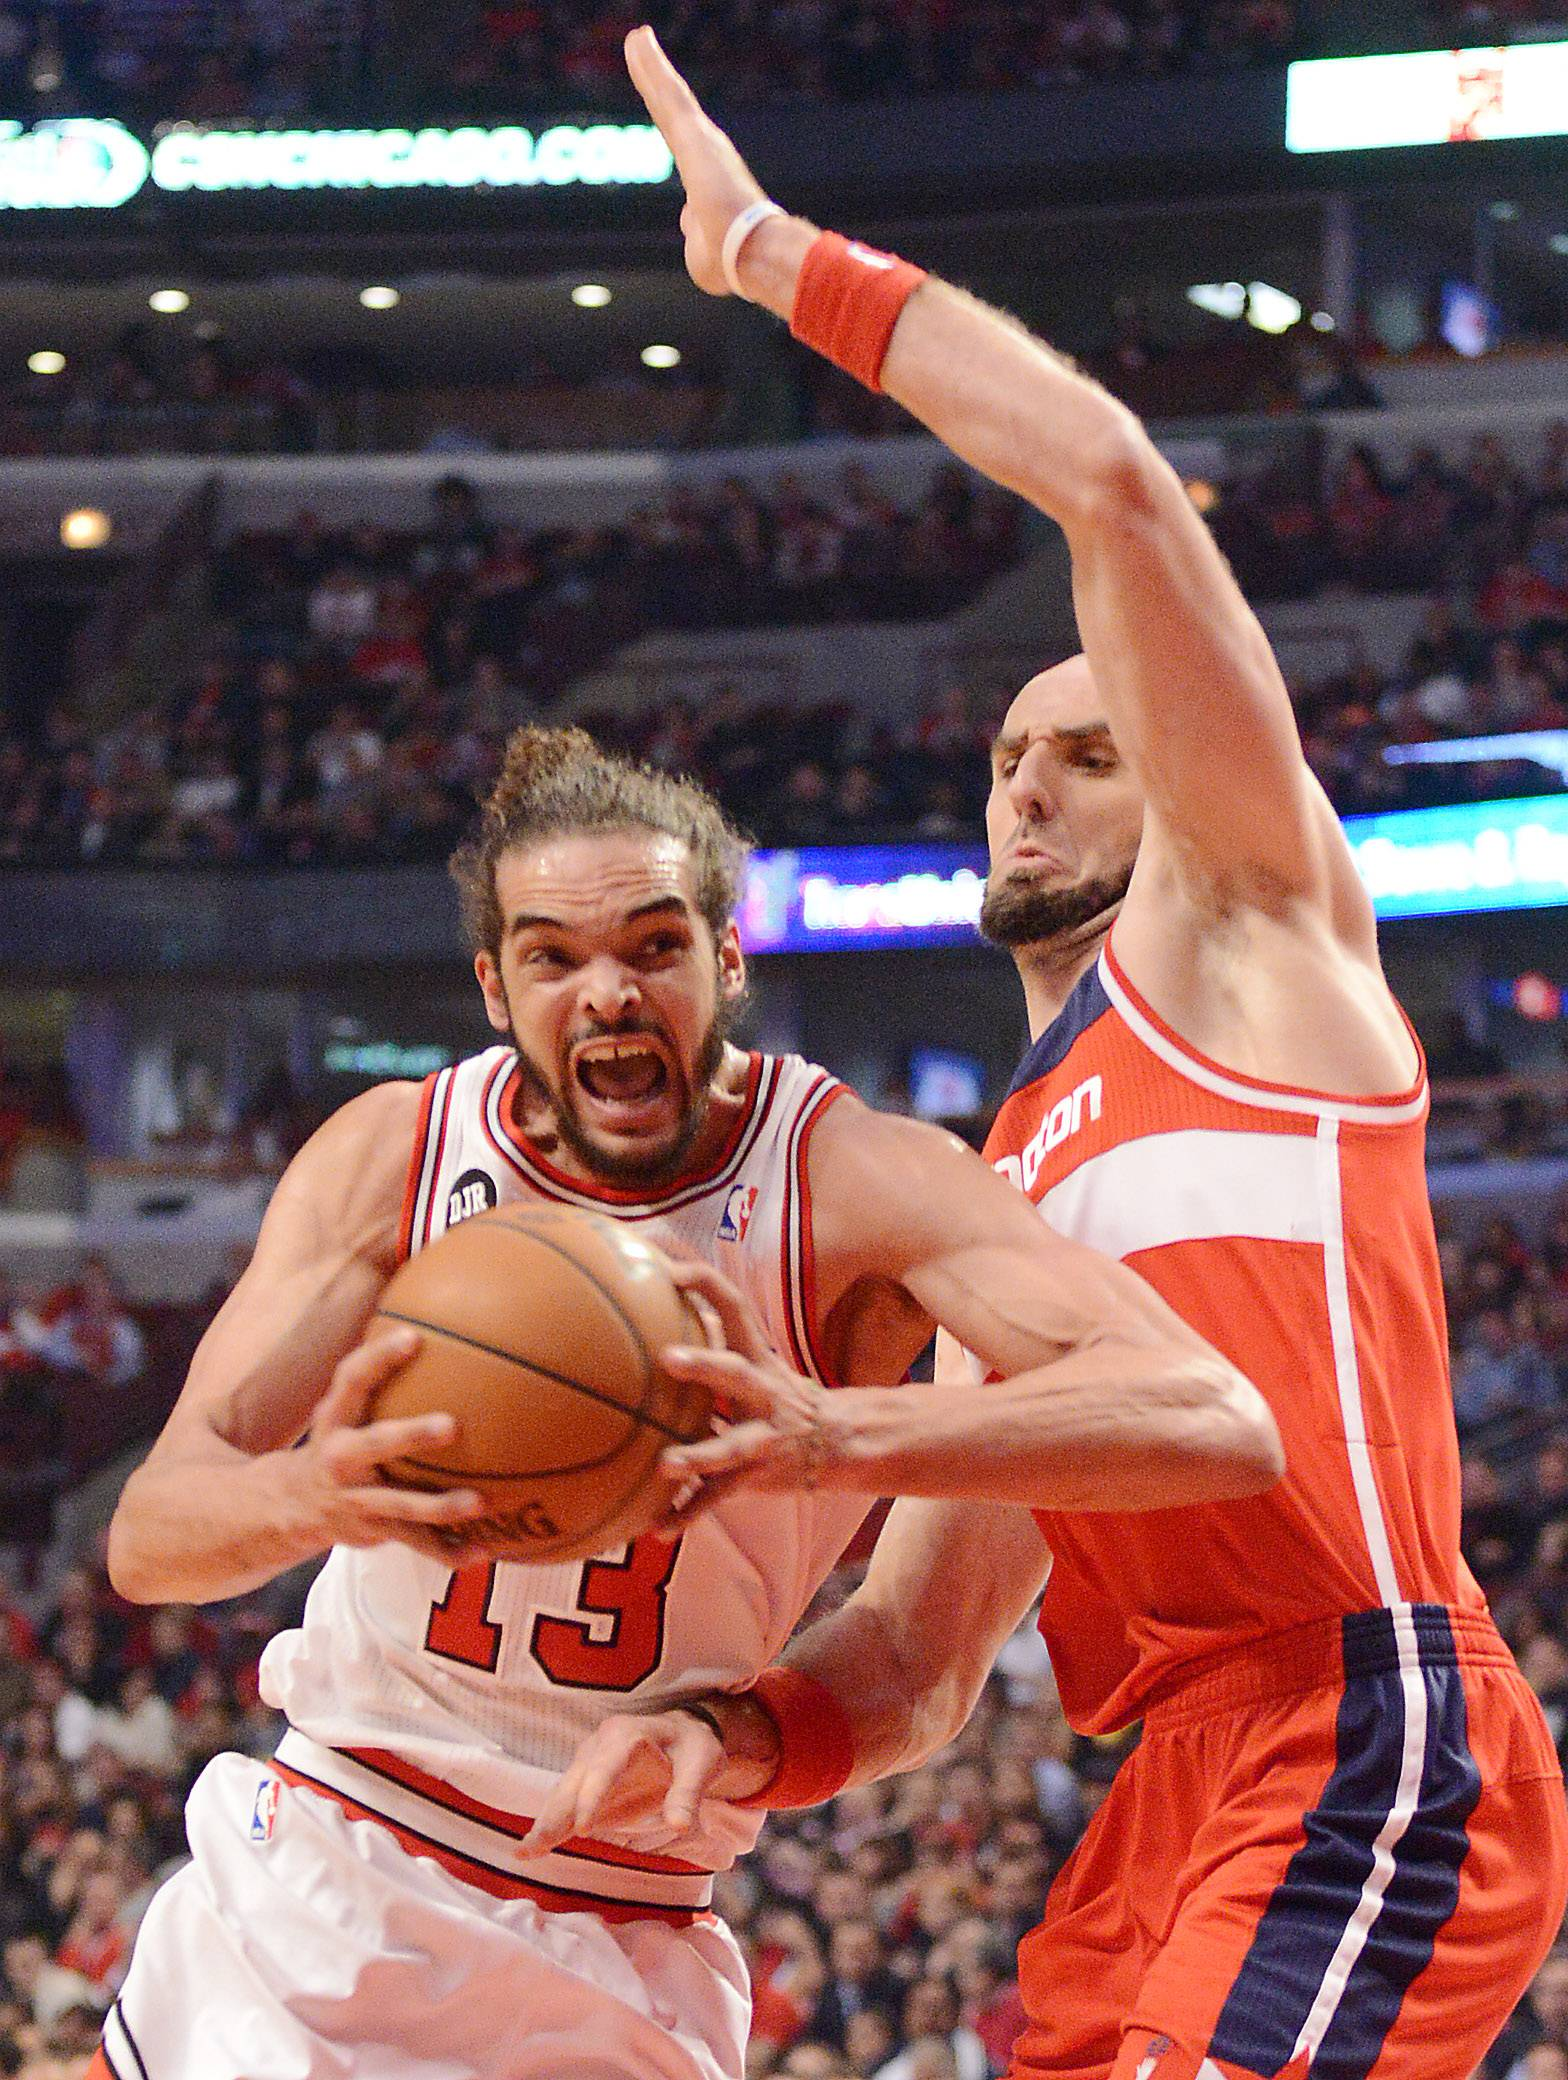 Chicago Bulls center Joakim Noah (13) drives past Washington Wizards center Marcin Gortat (4) and scores.